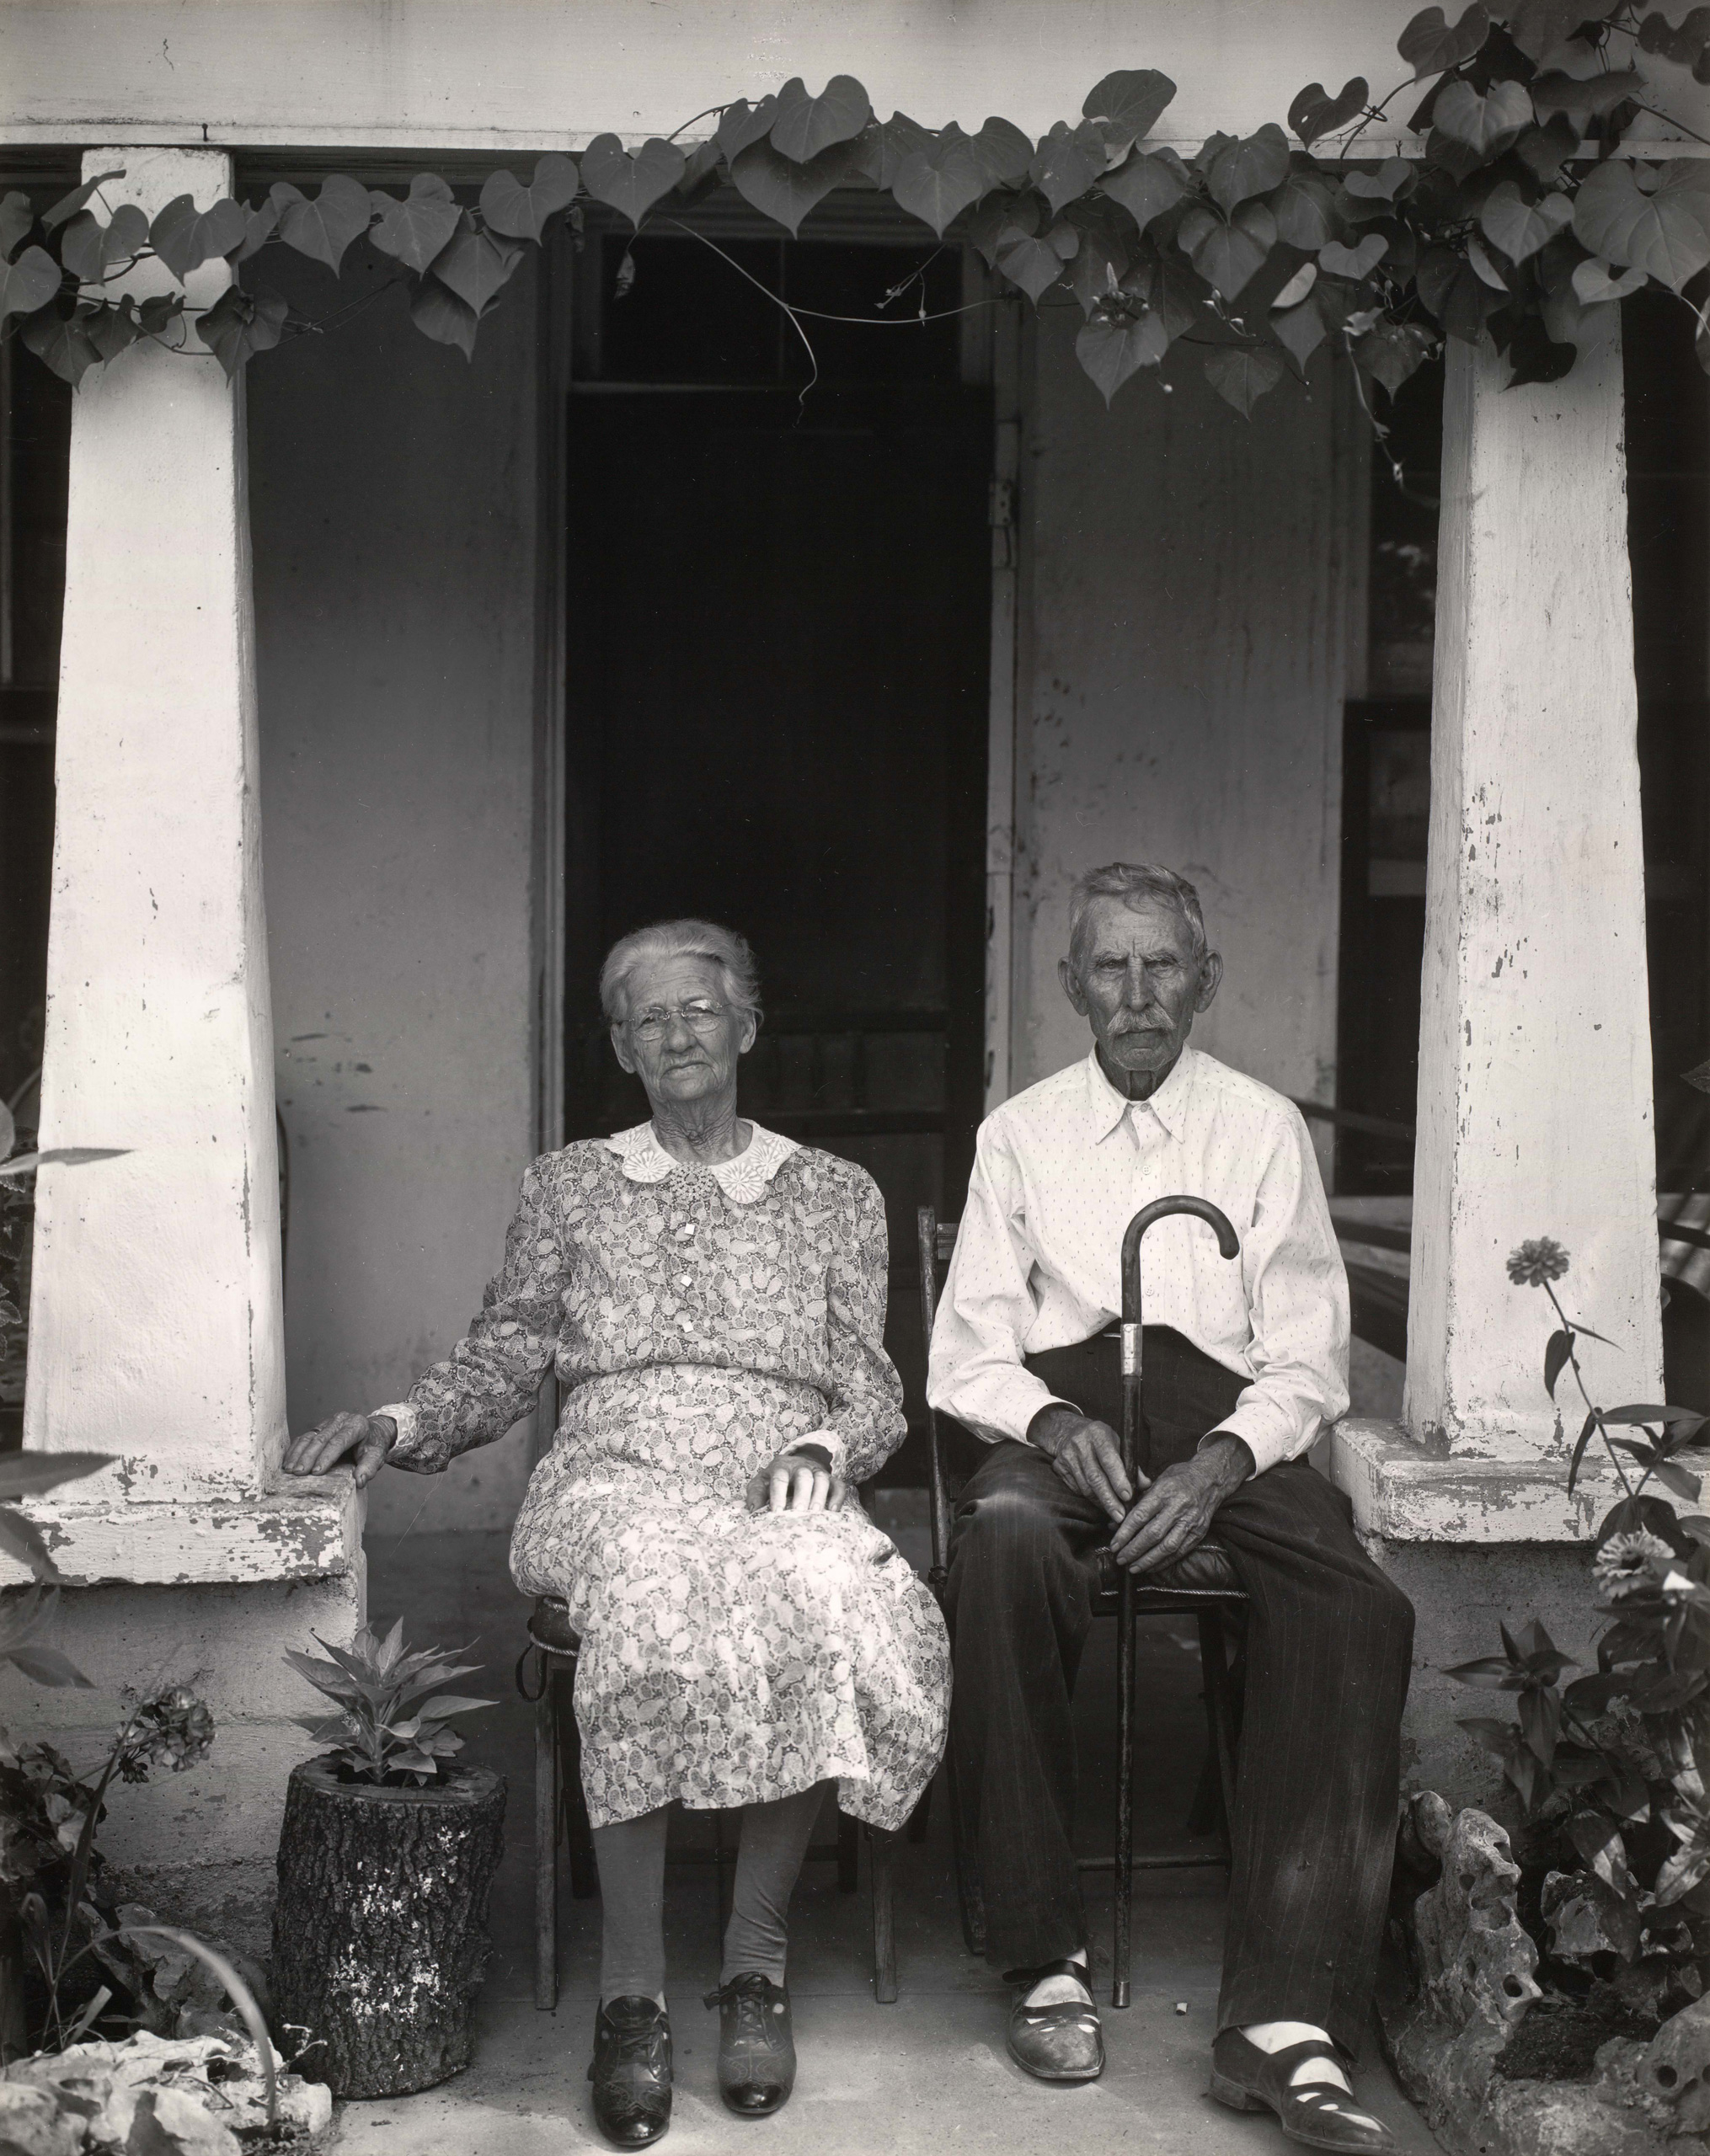 Mr. and Mrs. Fry of Burnet, Texas, 1941